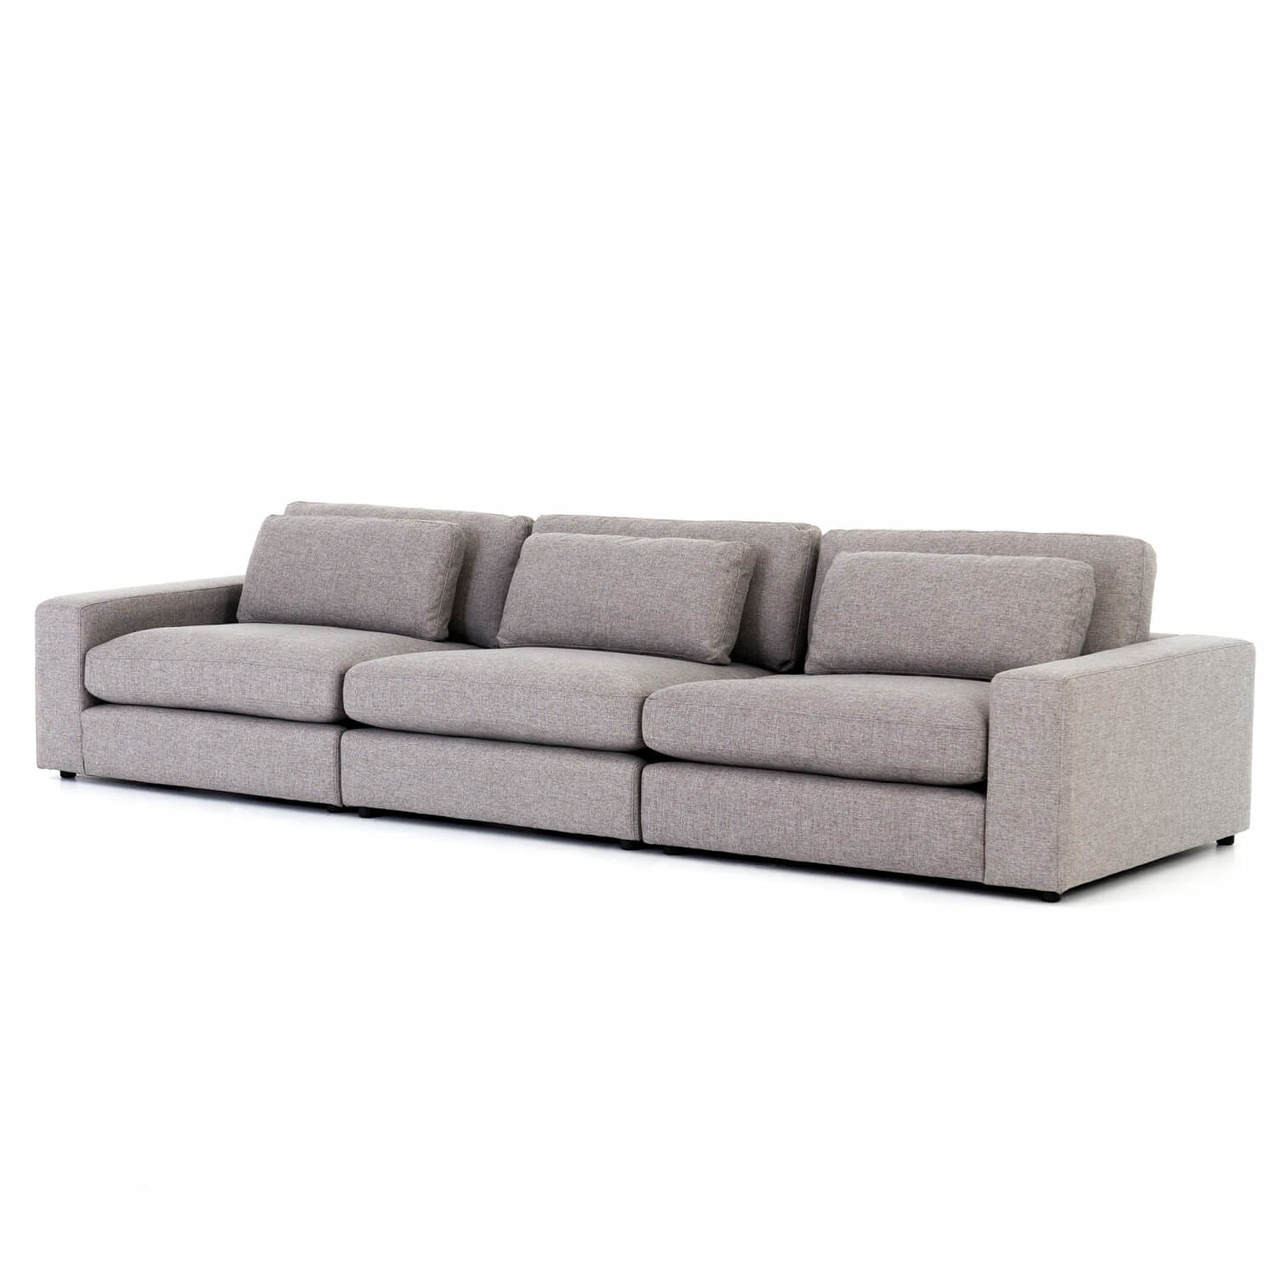 contemporary gray fabric sofa sofas jackson ms bloor 3 seater large 131